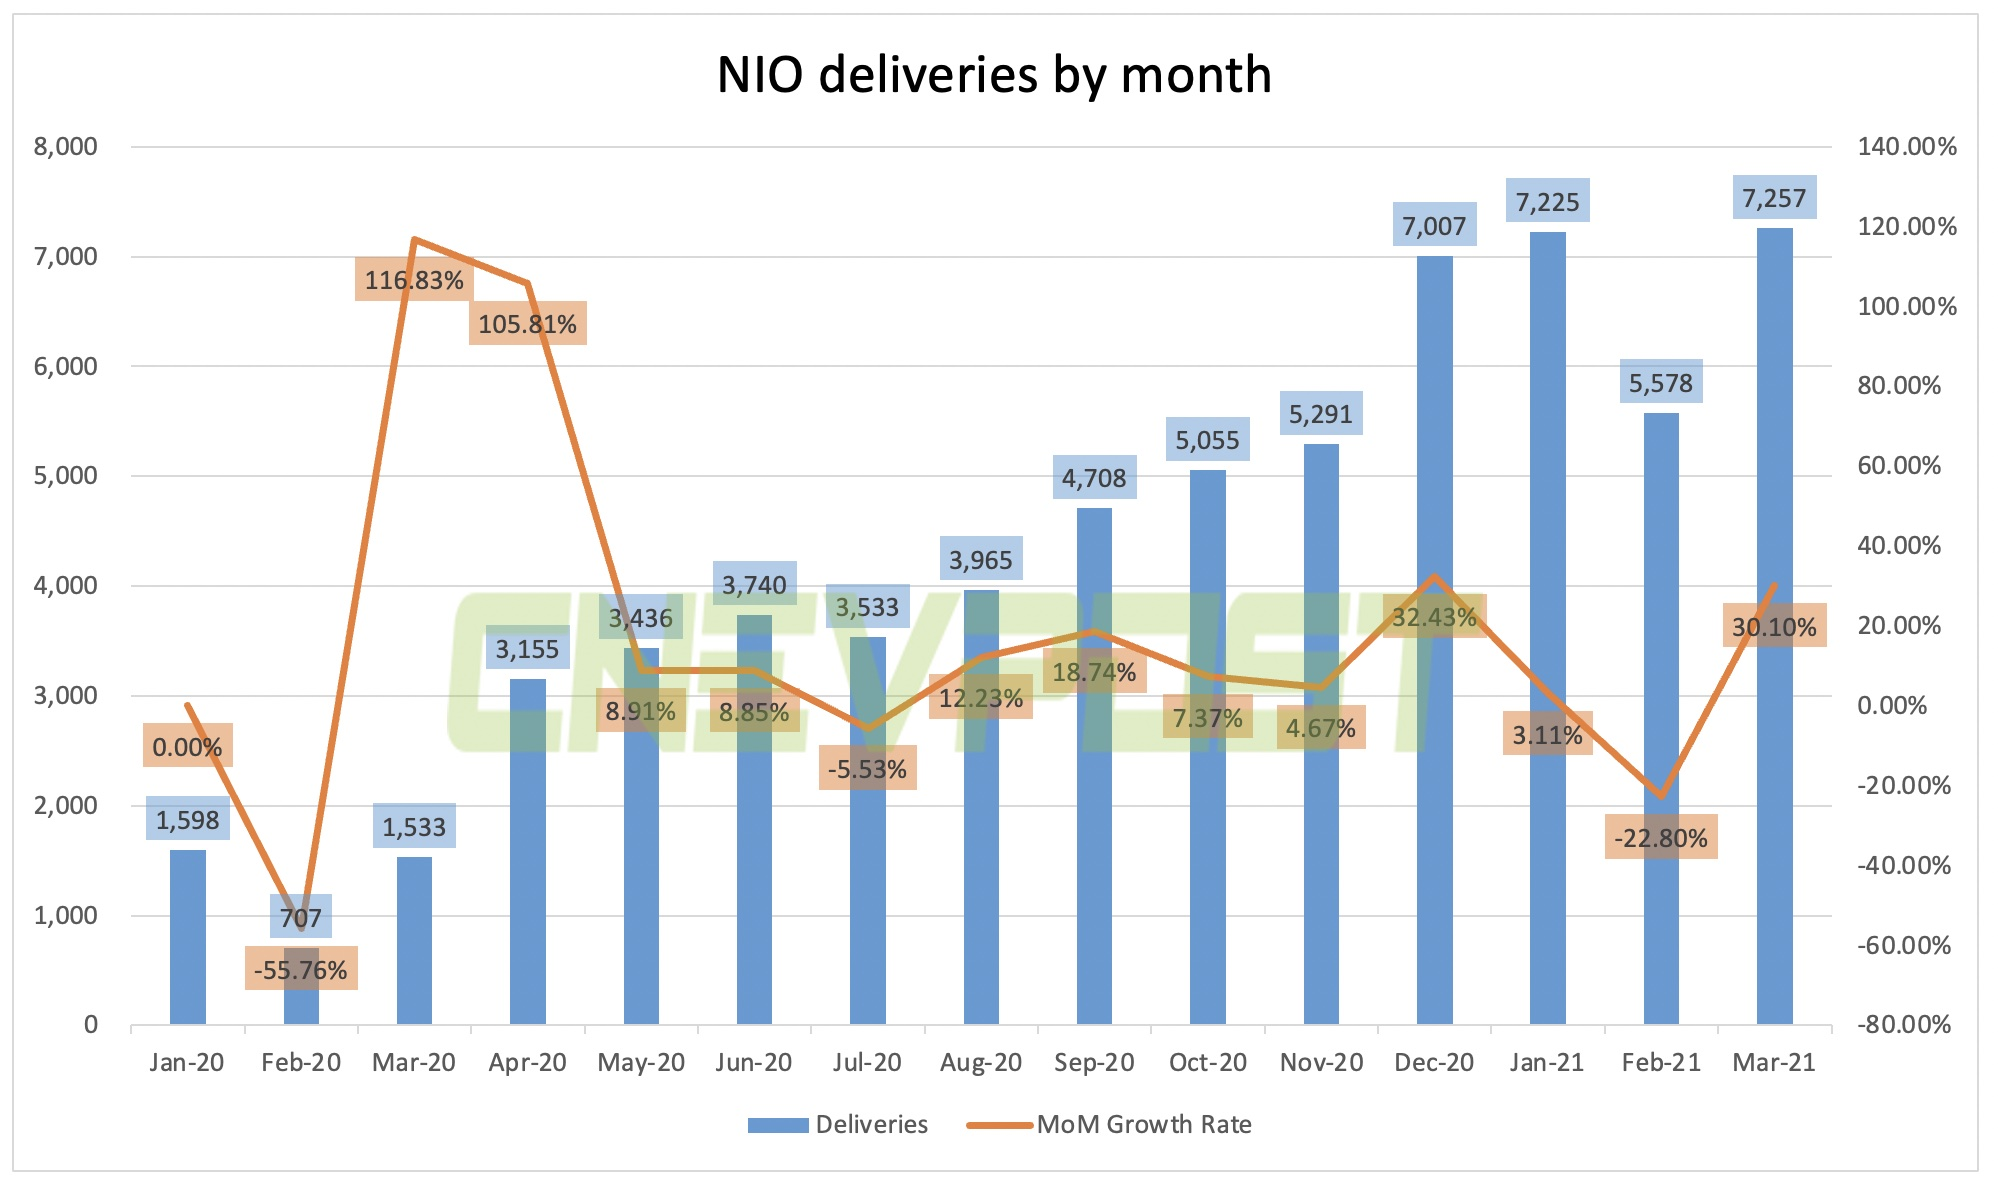 NIO delivers 7,257 vehicles in March, up 30% from February-CnEVPost